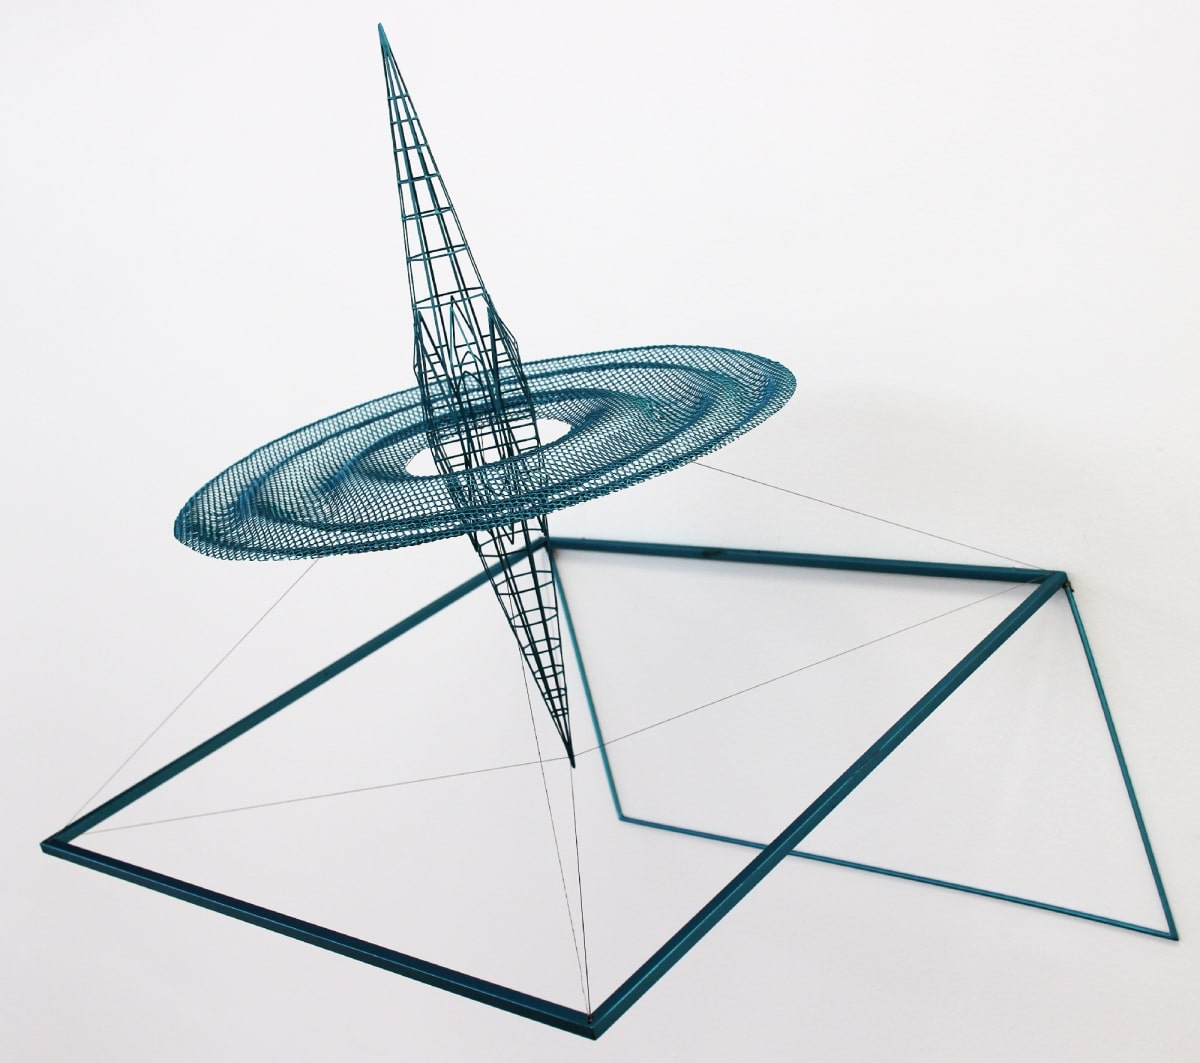 Neil Dawson Inspiration 10, 2013 Painted steel and stainless steel wire 18.5 x 18.9 x 15 in 47 x 48 x 38 cm